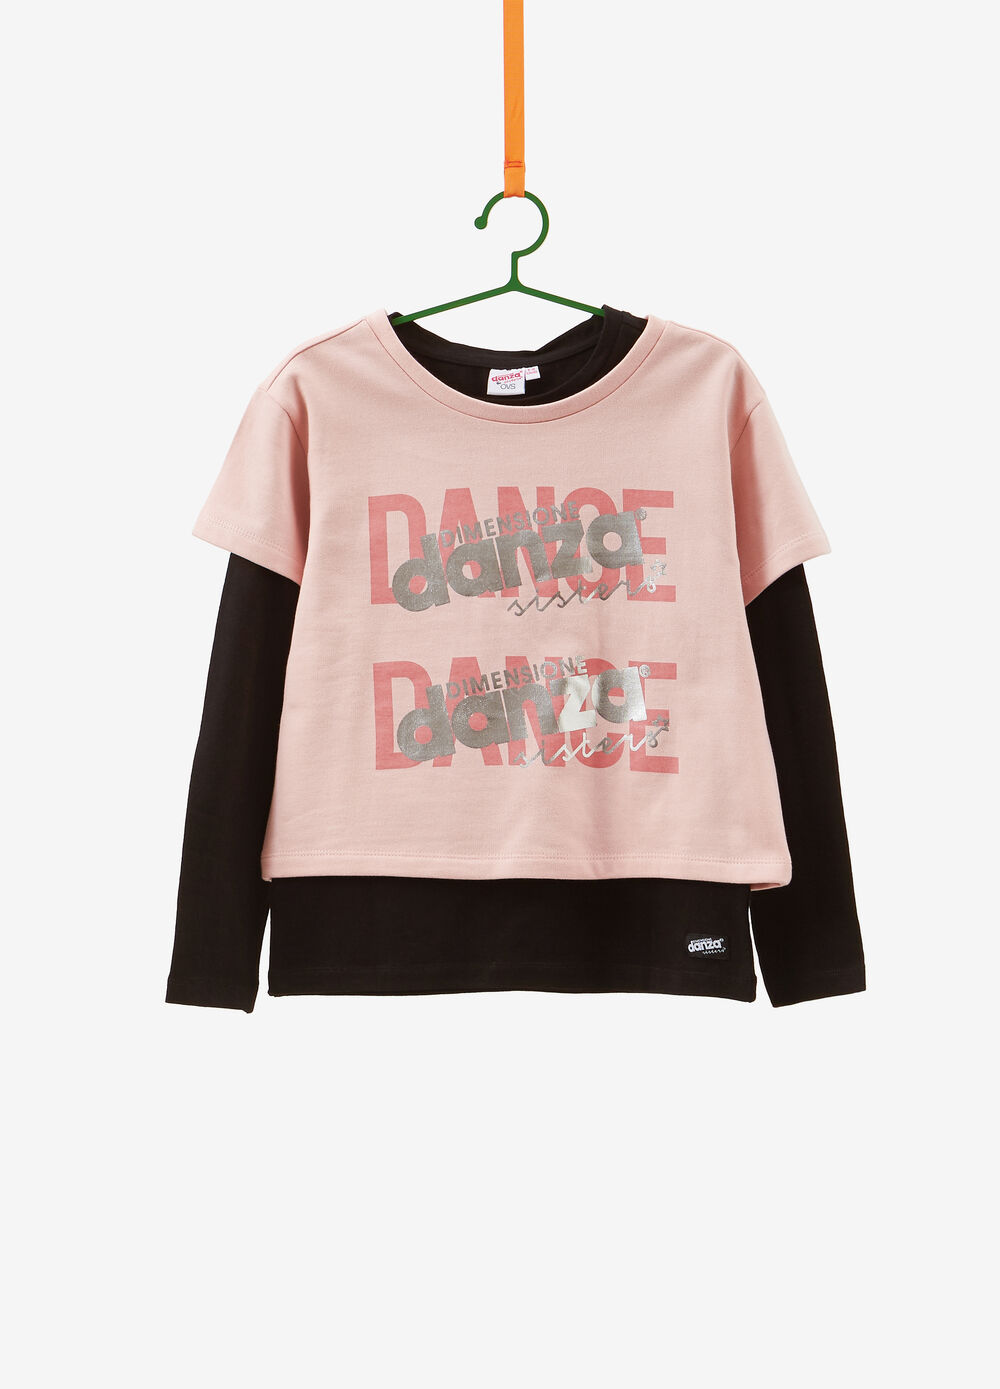 Dimensione Danza T-shirt and sweatshirt outfit